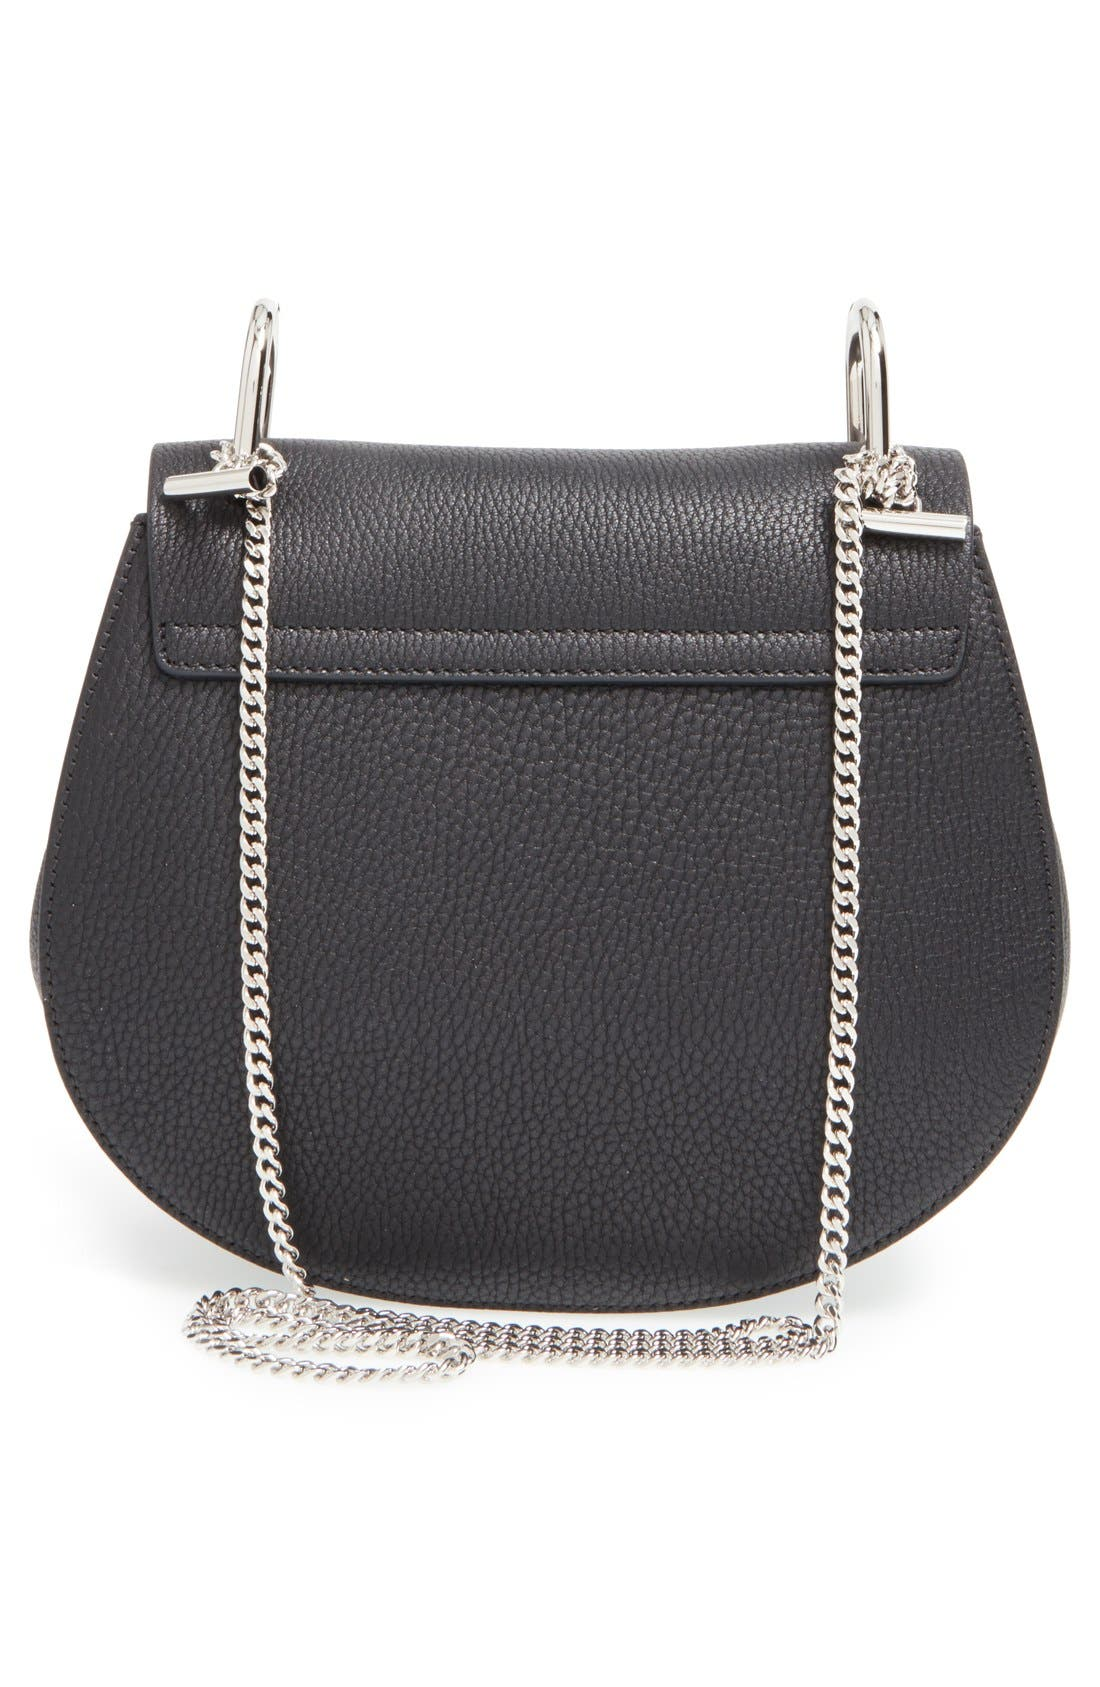 'Small Drew' Leather Shoulder Bag,                             Alternate thumbnail 3, color,                             001